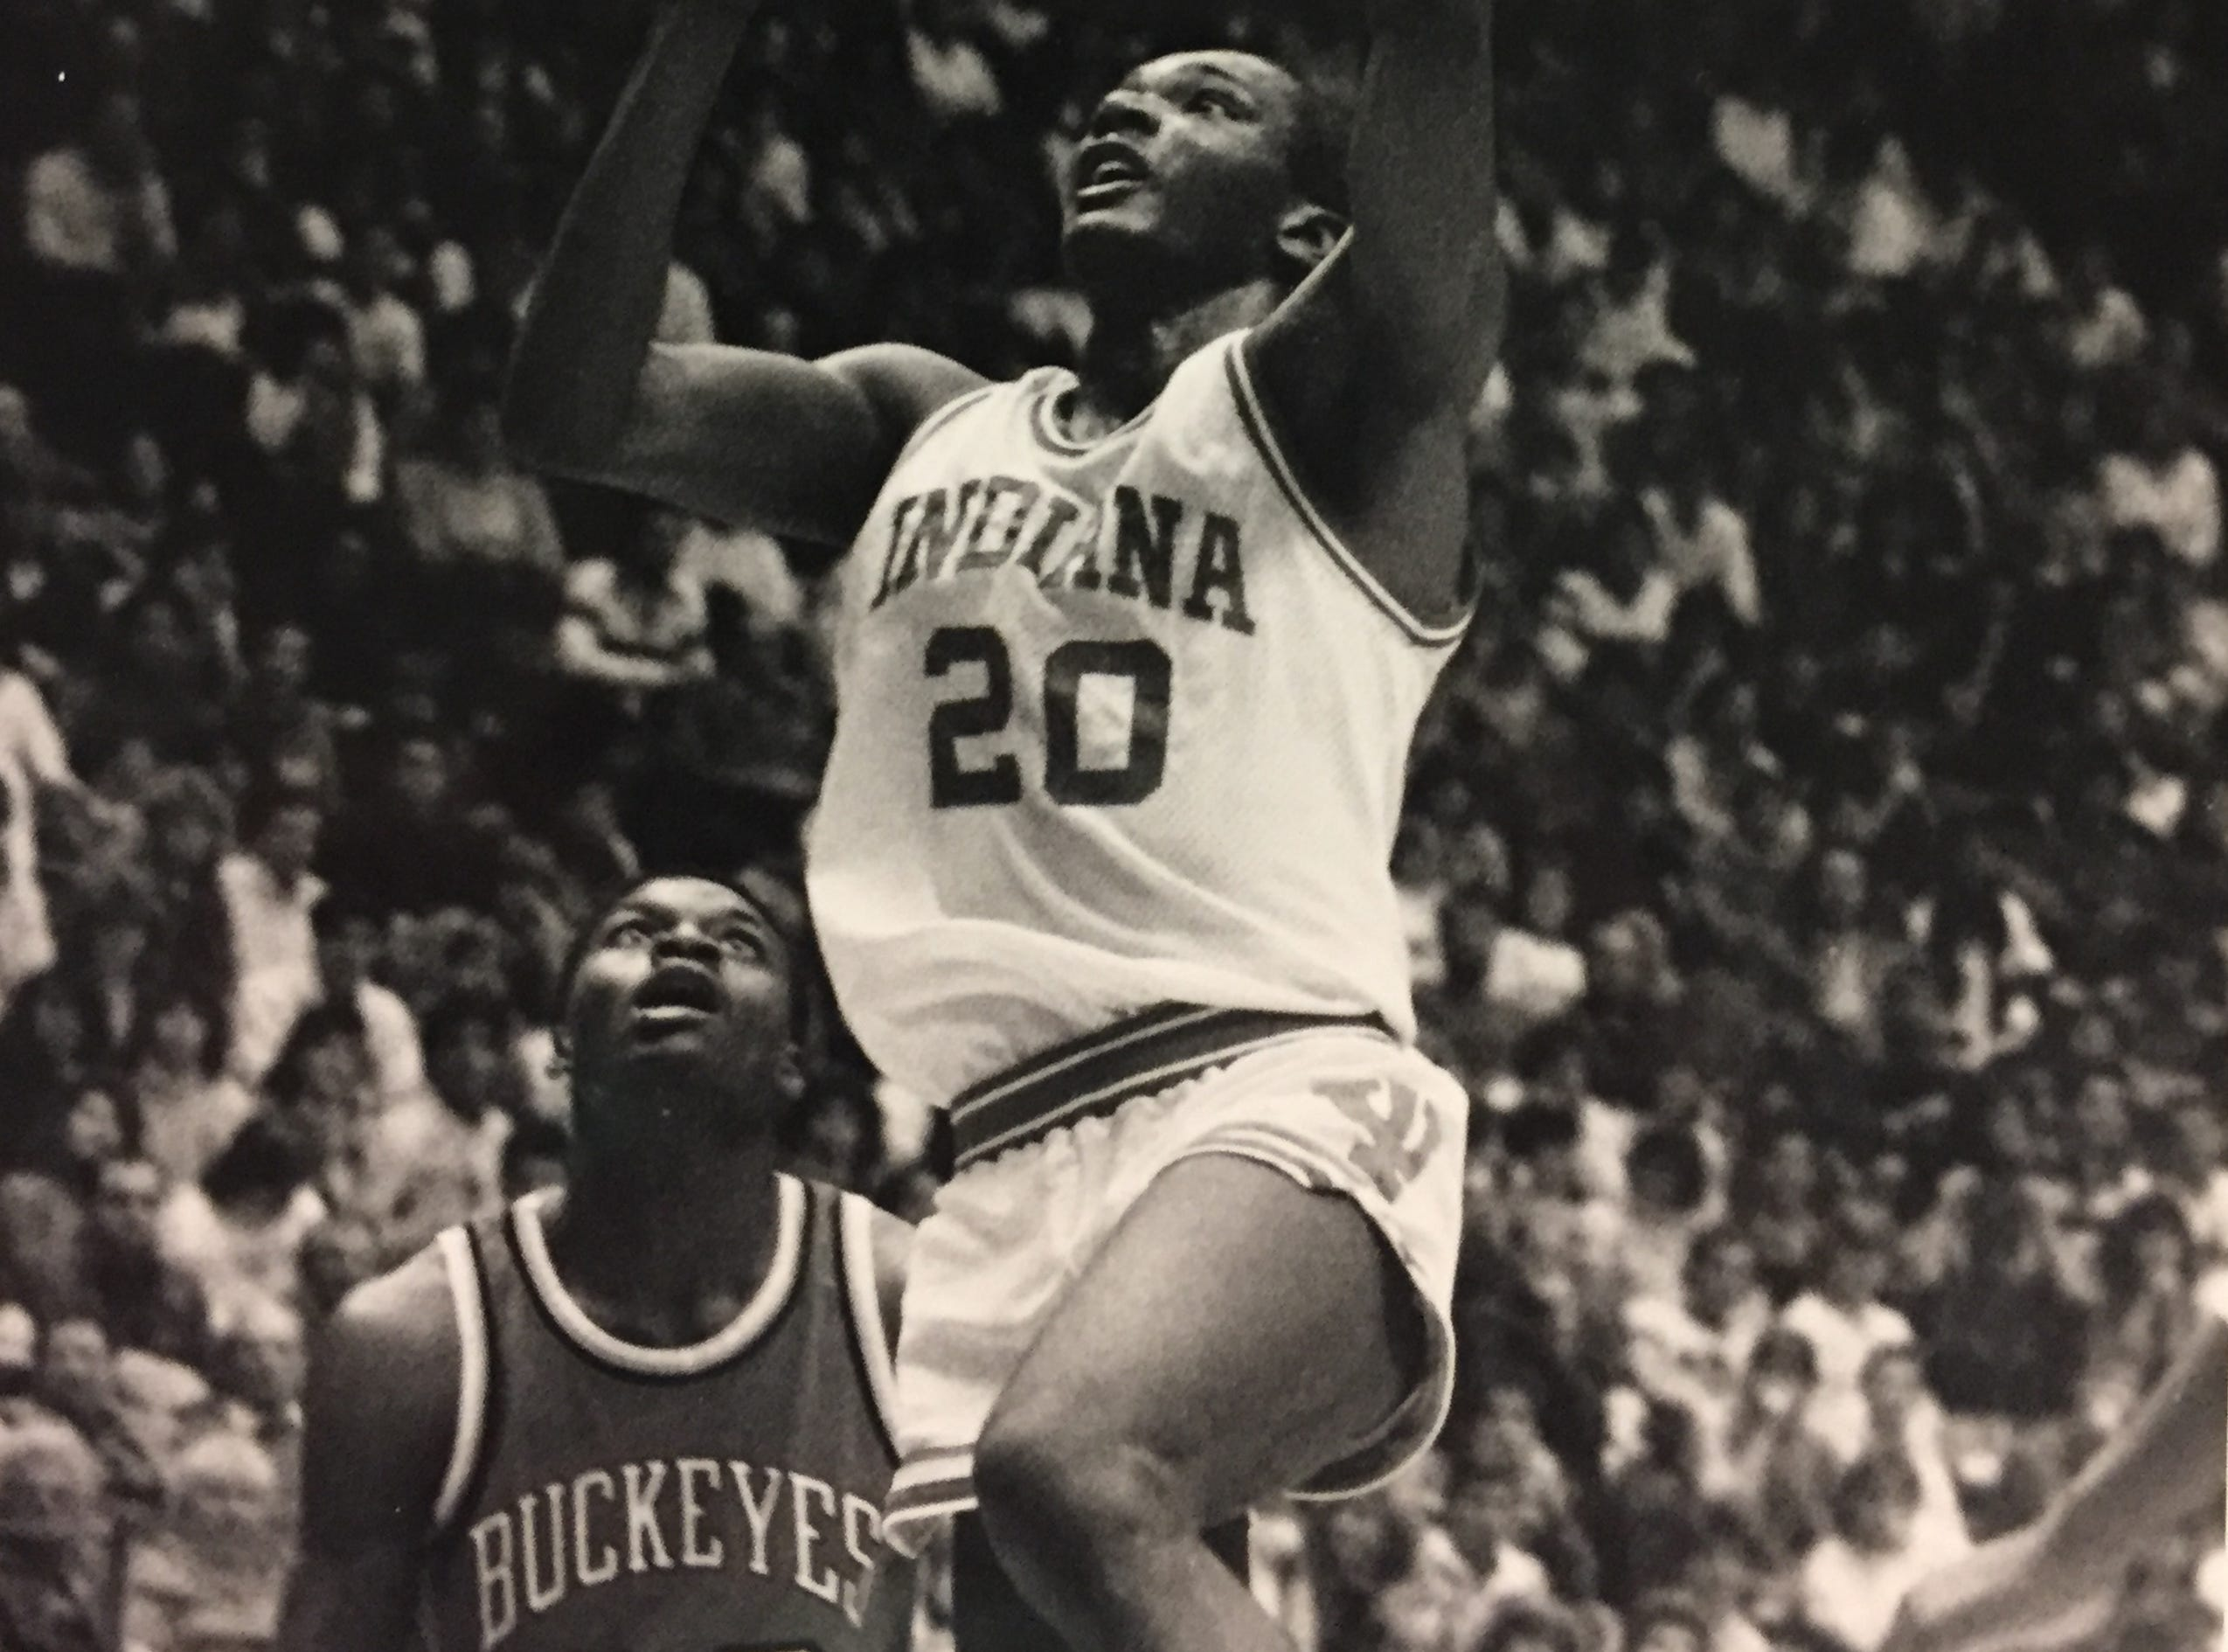 Ricky Calloway goes up for a shot against Ohio State in 1987.